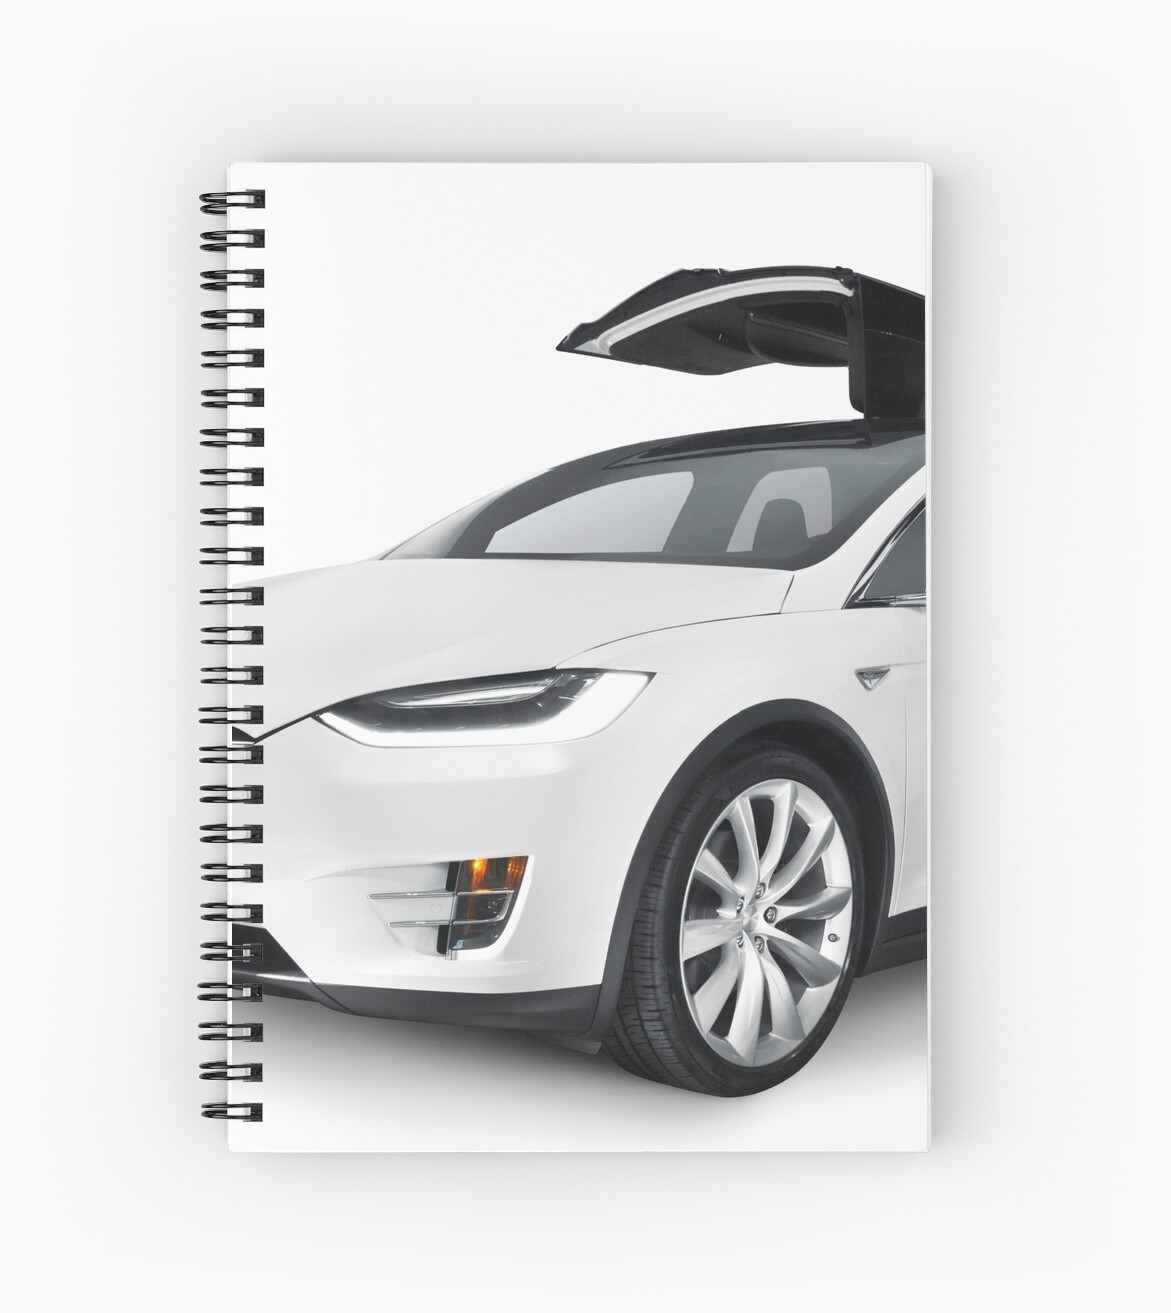 White 2017 Tesla Model X Luxury Suv Electric Car With Open Falcon